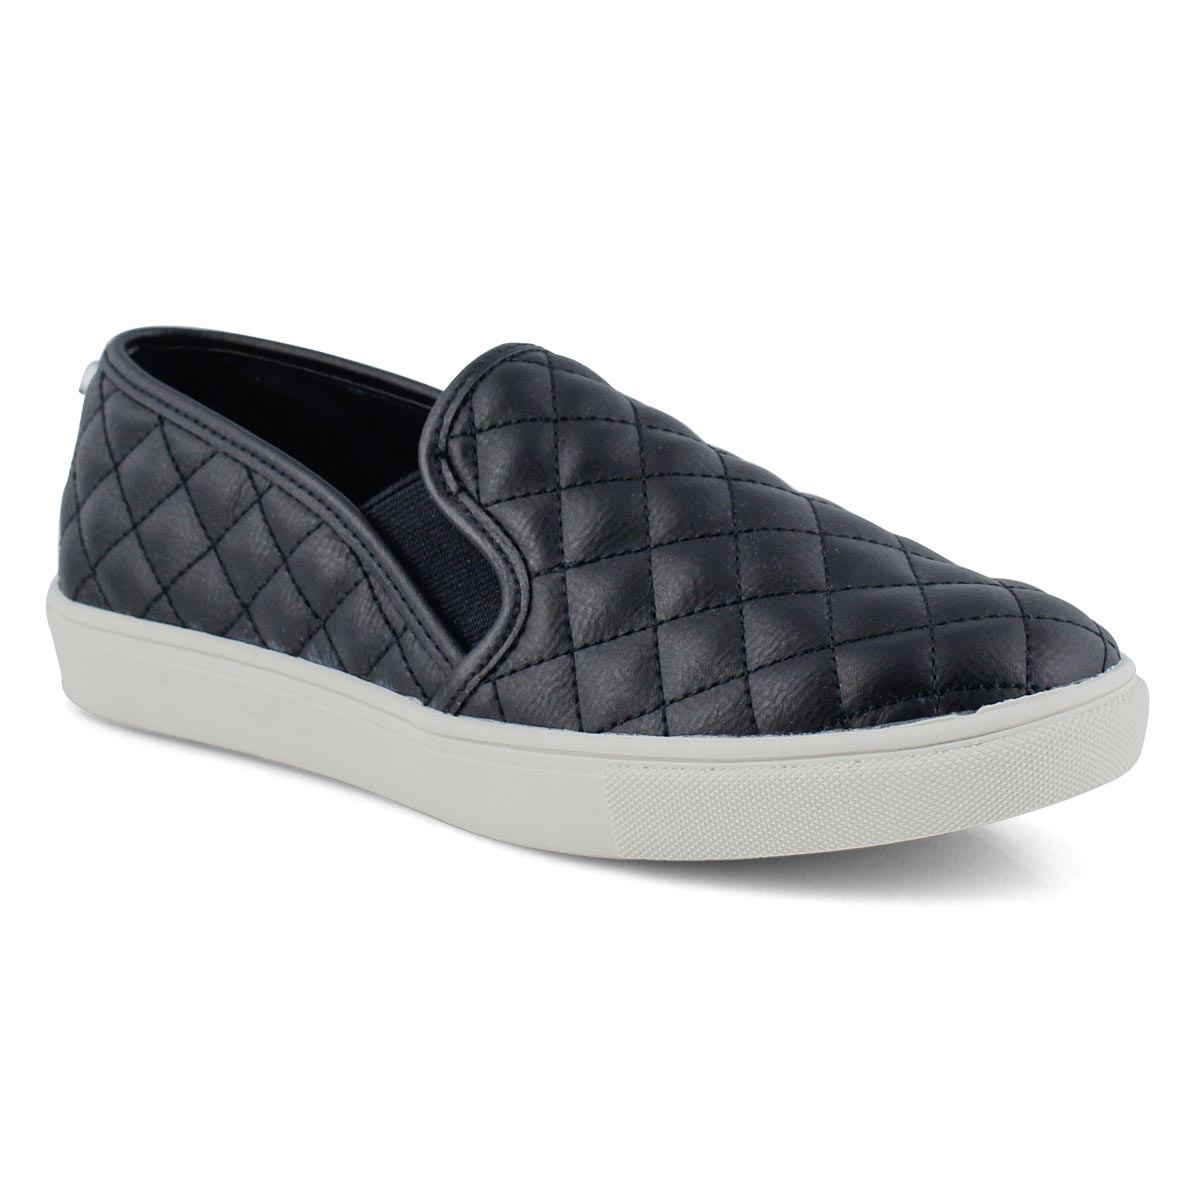 Women's ECENTRCQ black casual slip on shoes